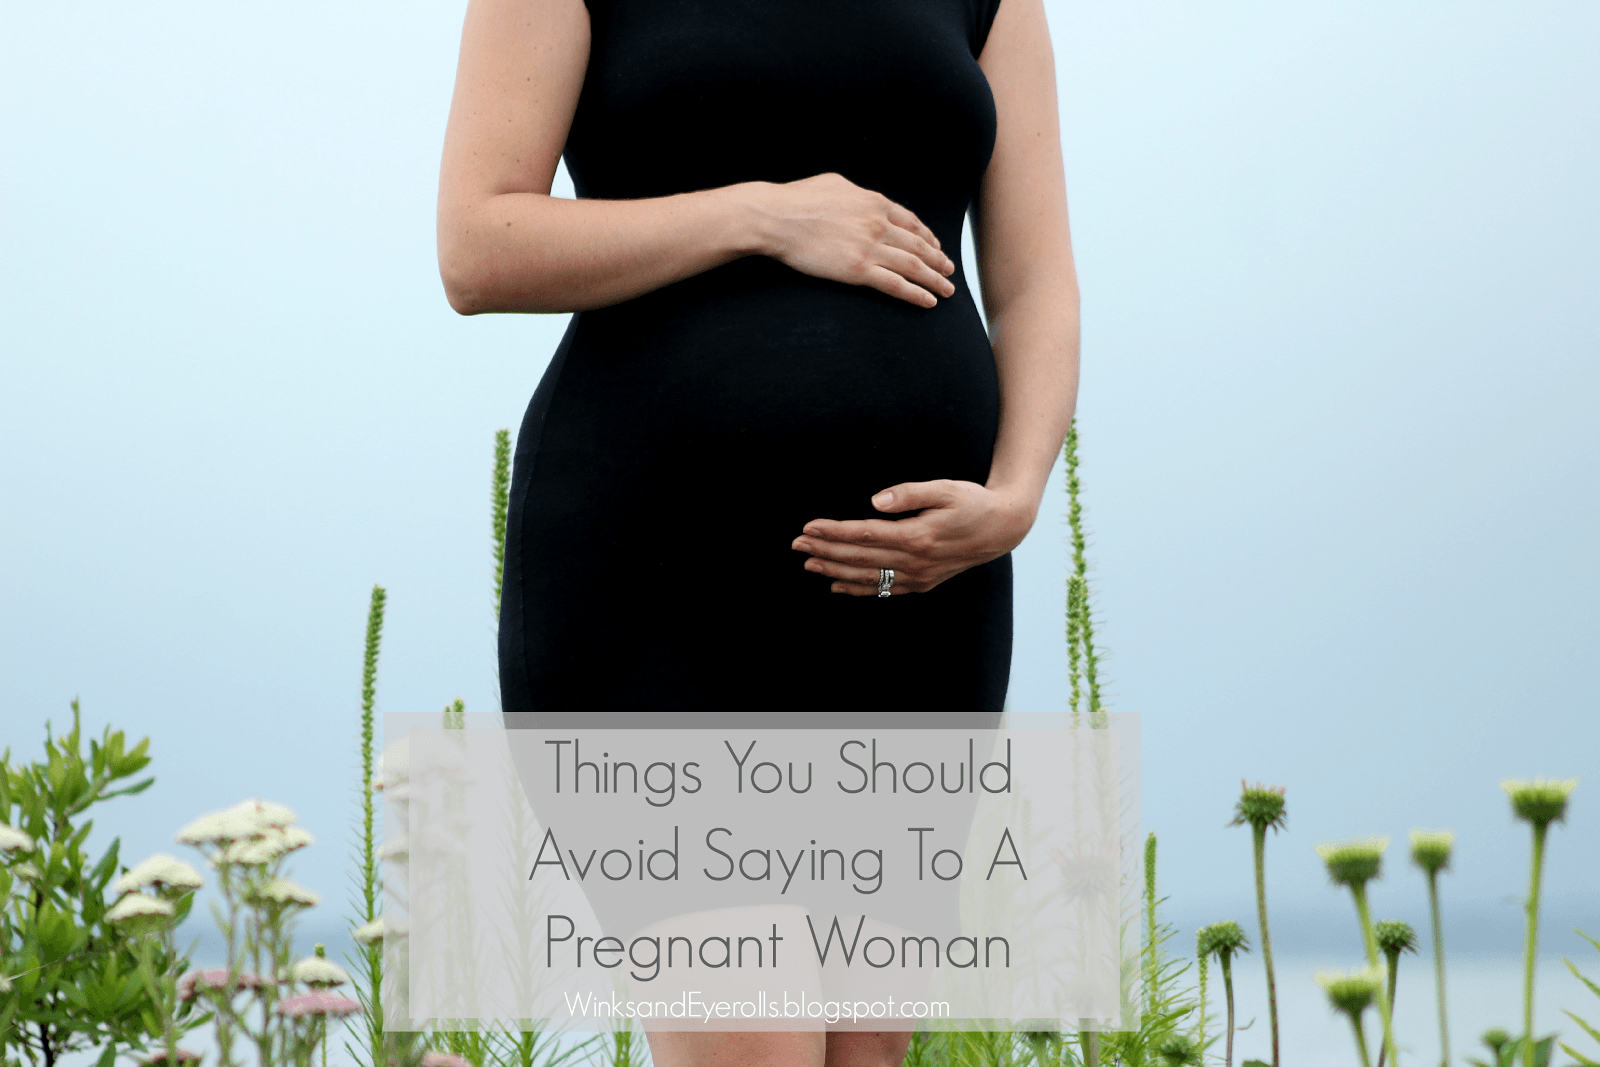 Things To Avoid Saying To A Pregnant Woman